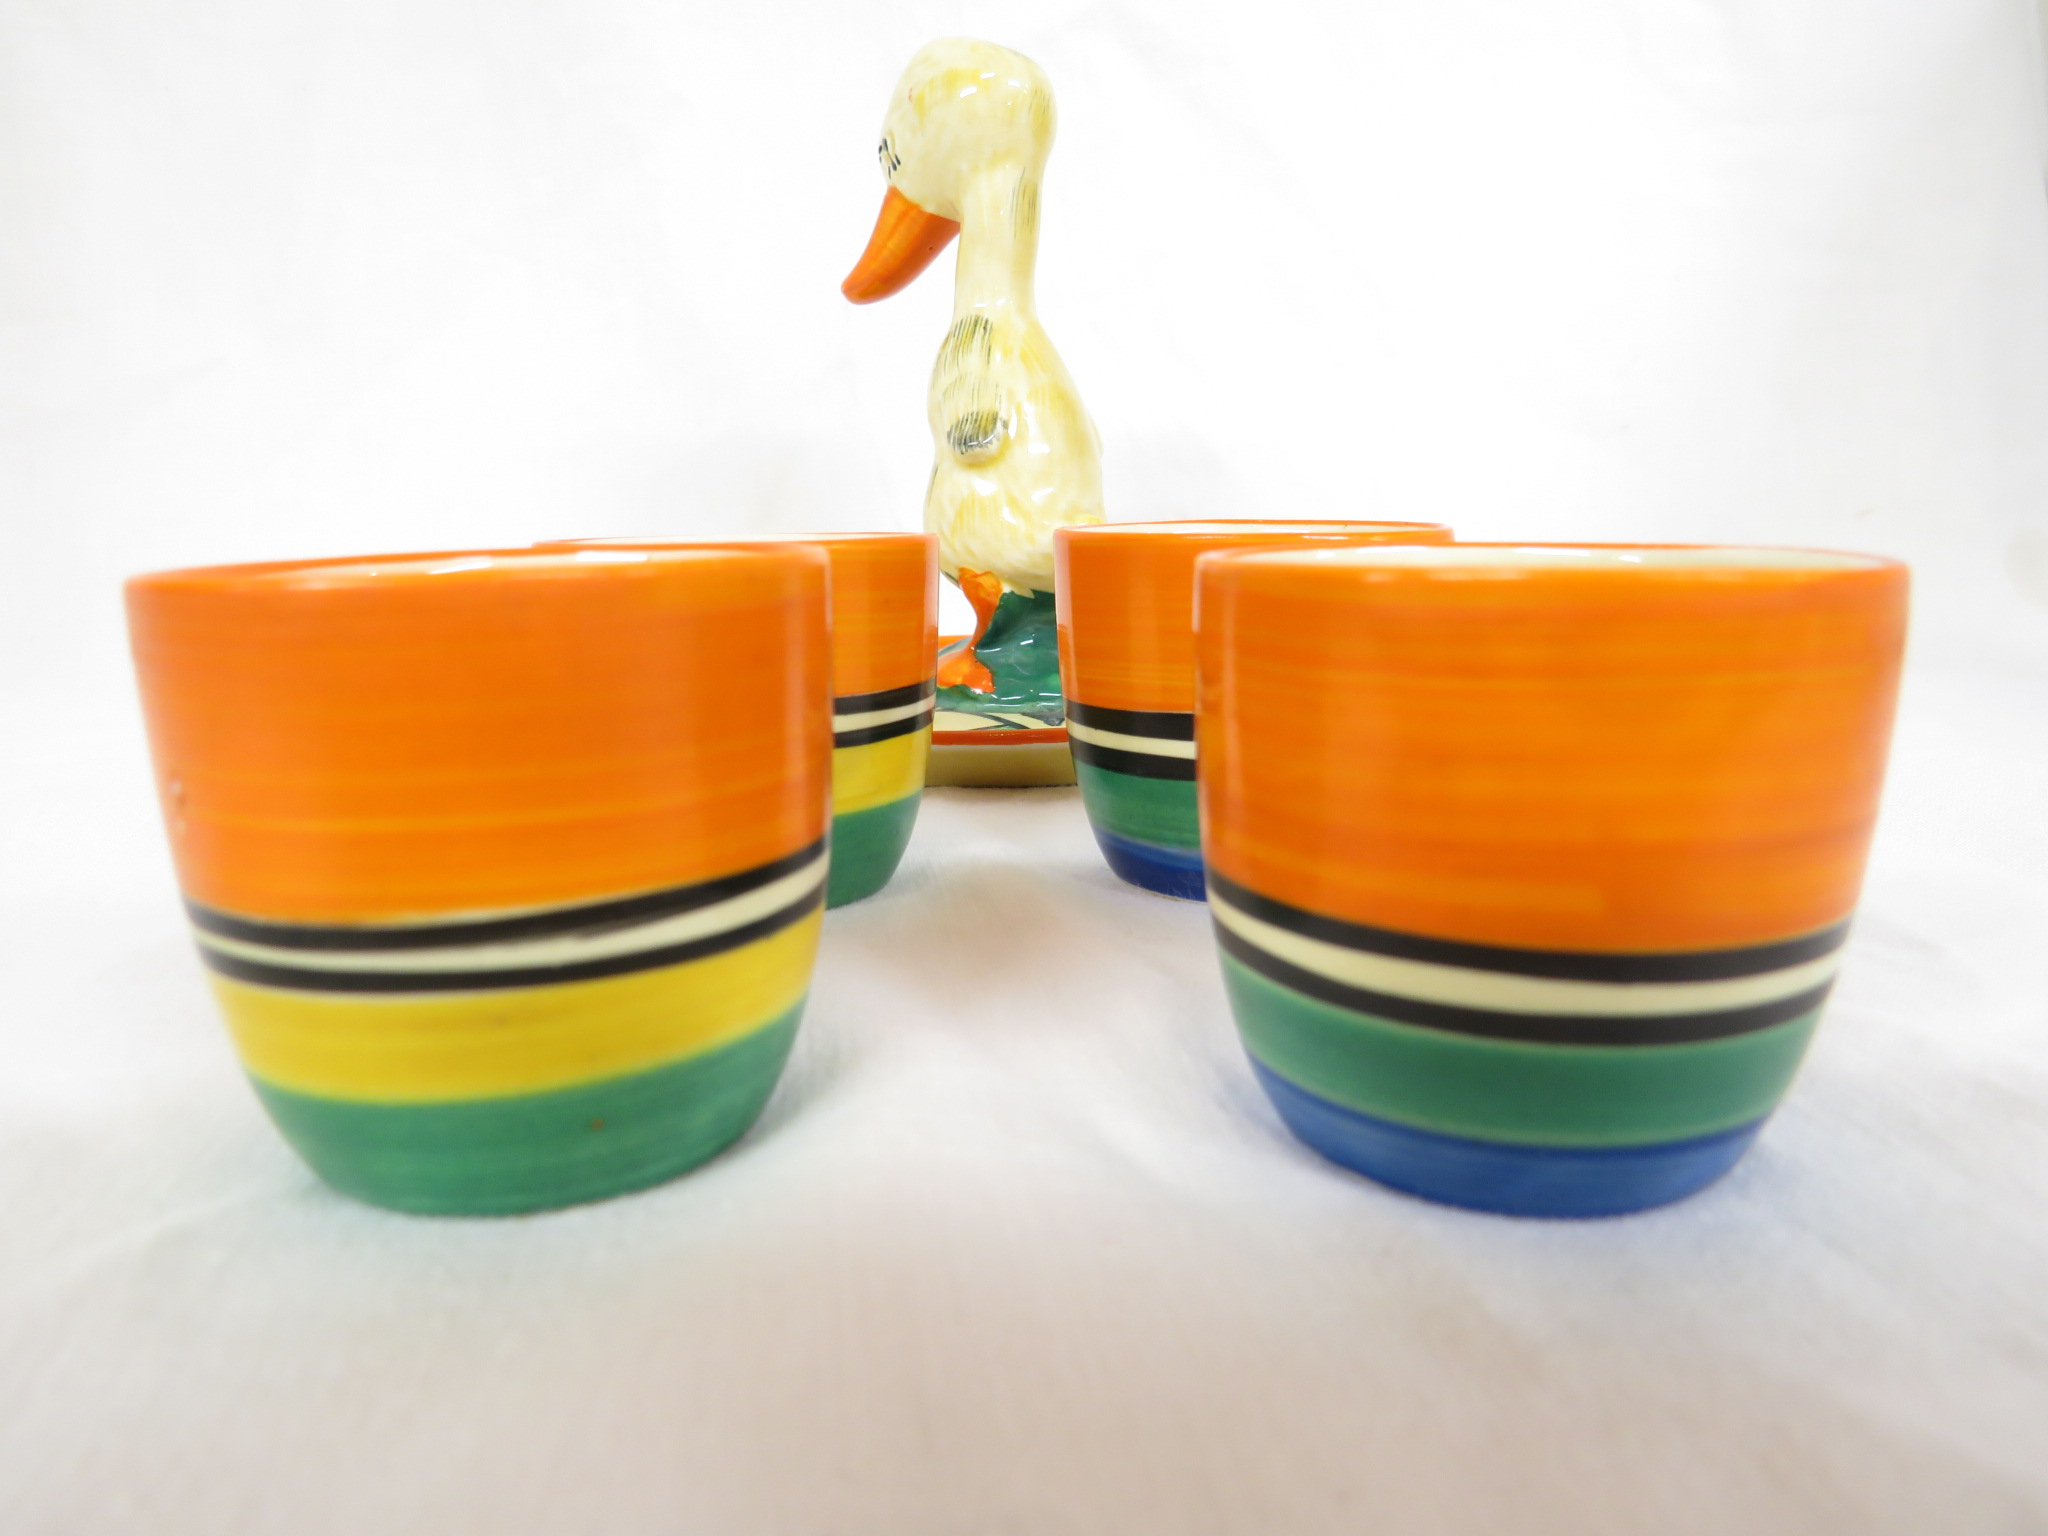 Lot 68 - A Clarice Cliff Bizarre duck egg cruet, the stand with an orange border and stylized leaf pattern in